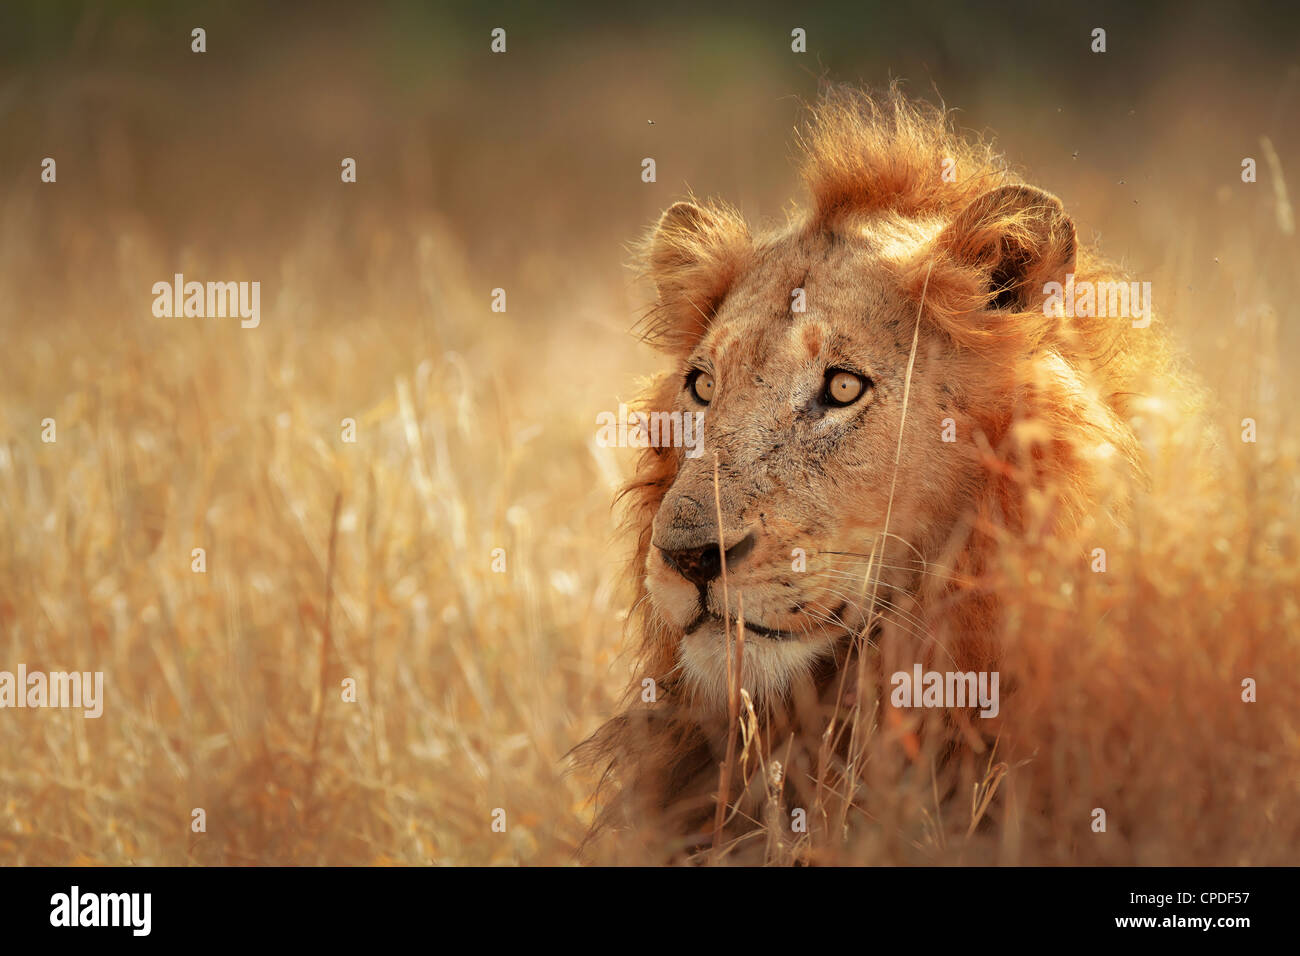 Big male lion lying in dense grassland - Kruger National Park - South Africa Stock Photo